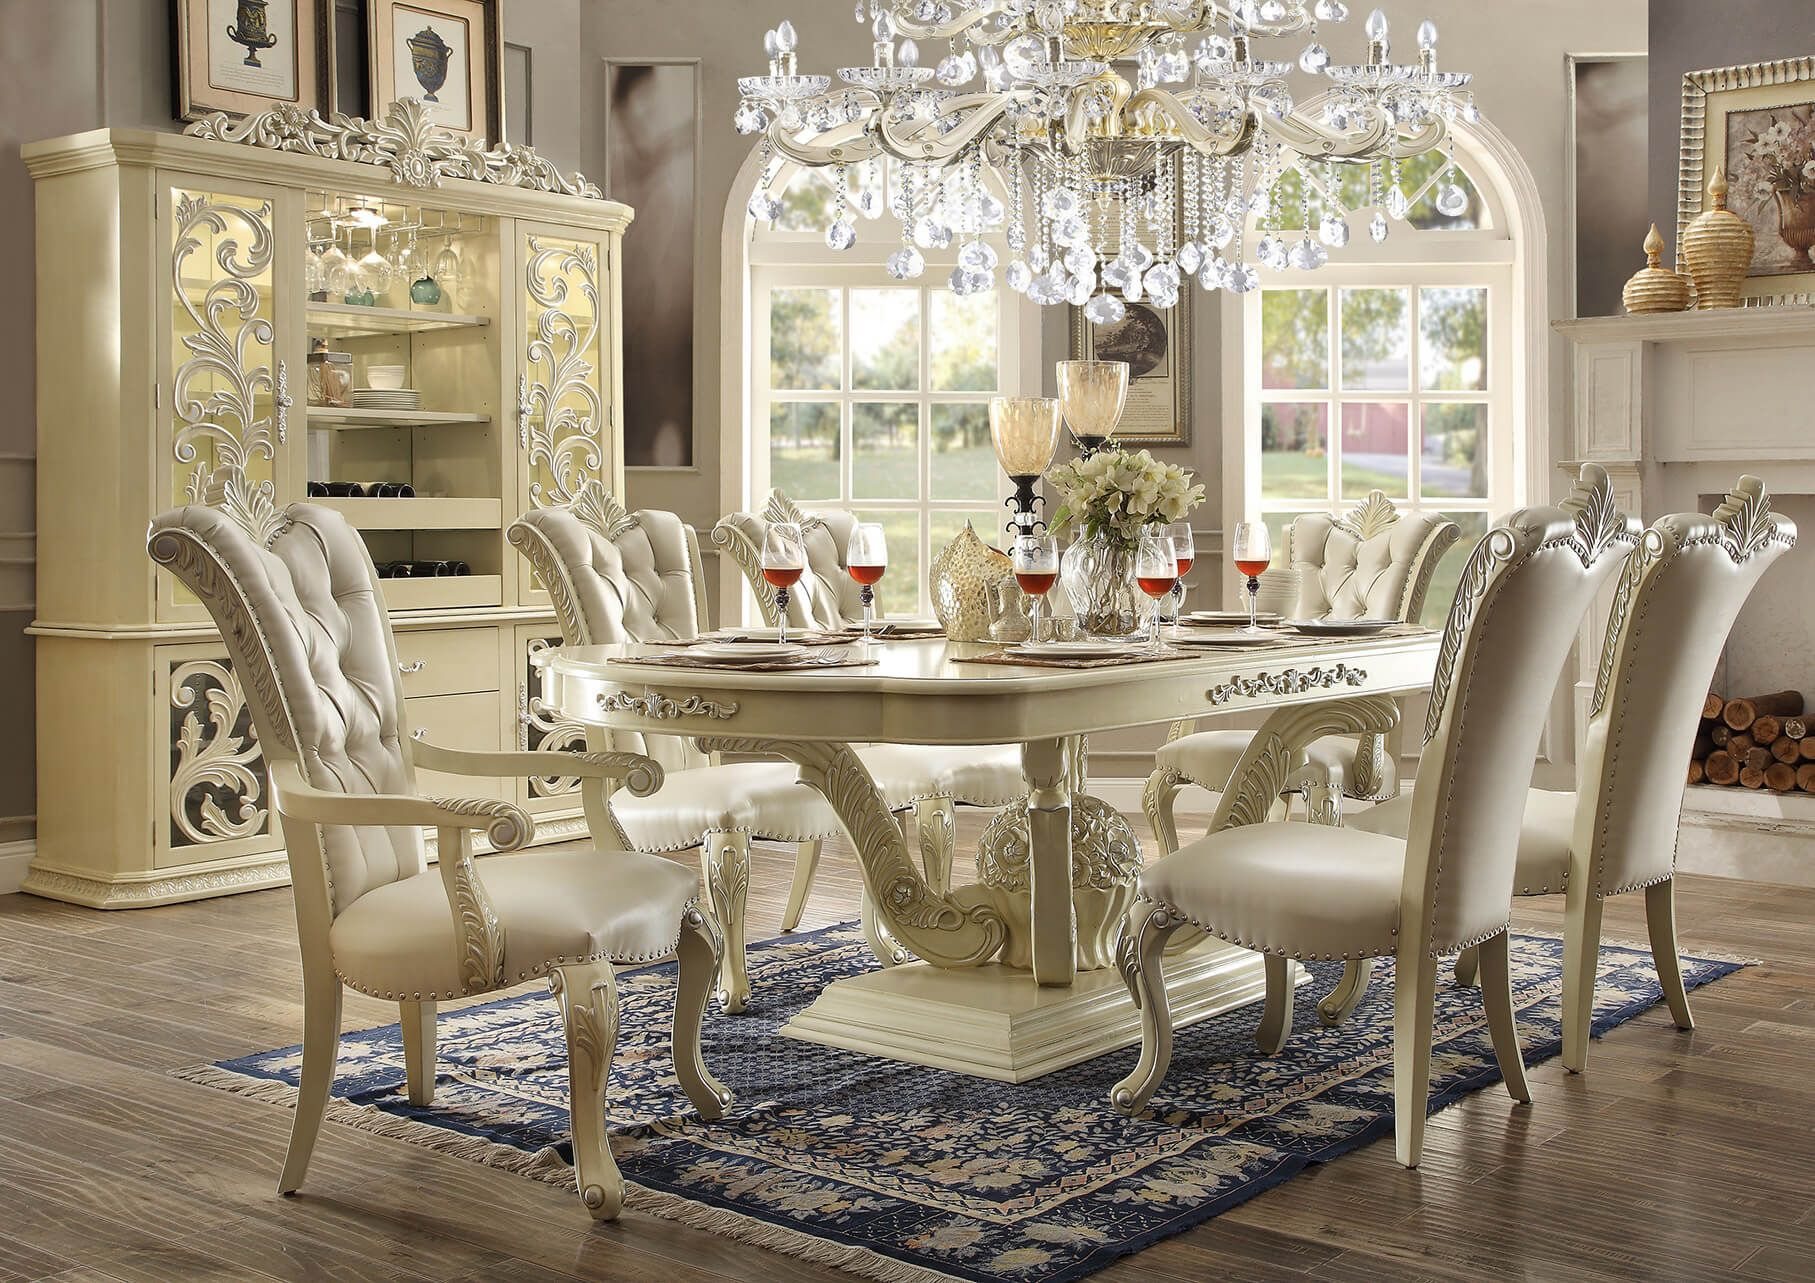 Inspiration about 9 Piece Homey Design Marbella Hd 27 Dining Set In 2019 (#17 of 20)